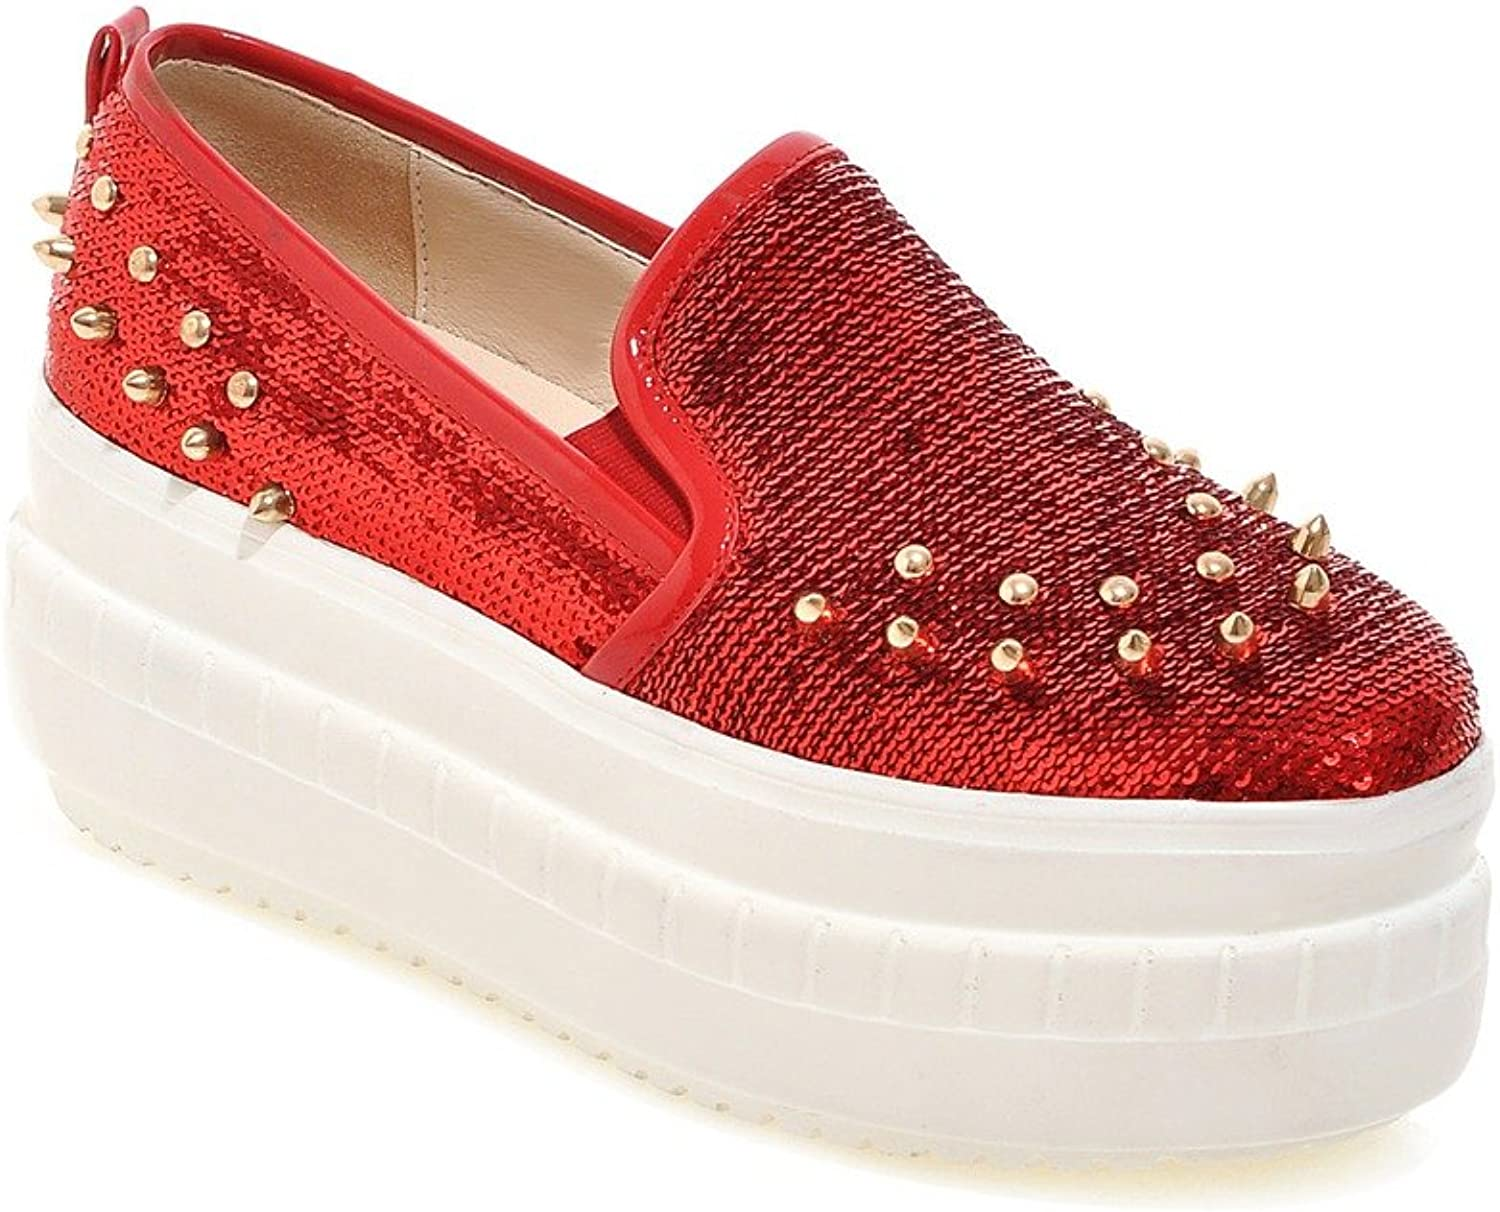 KingRover Women's Fashion Studded Sequin Fabric Casual Platform shoes